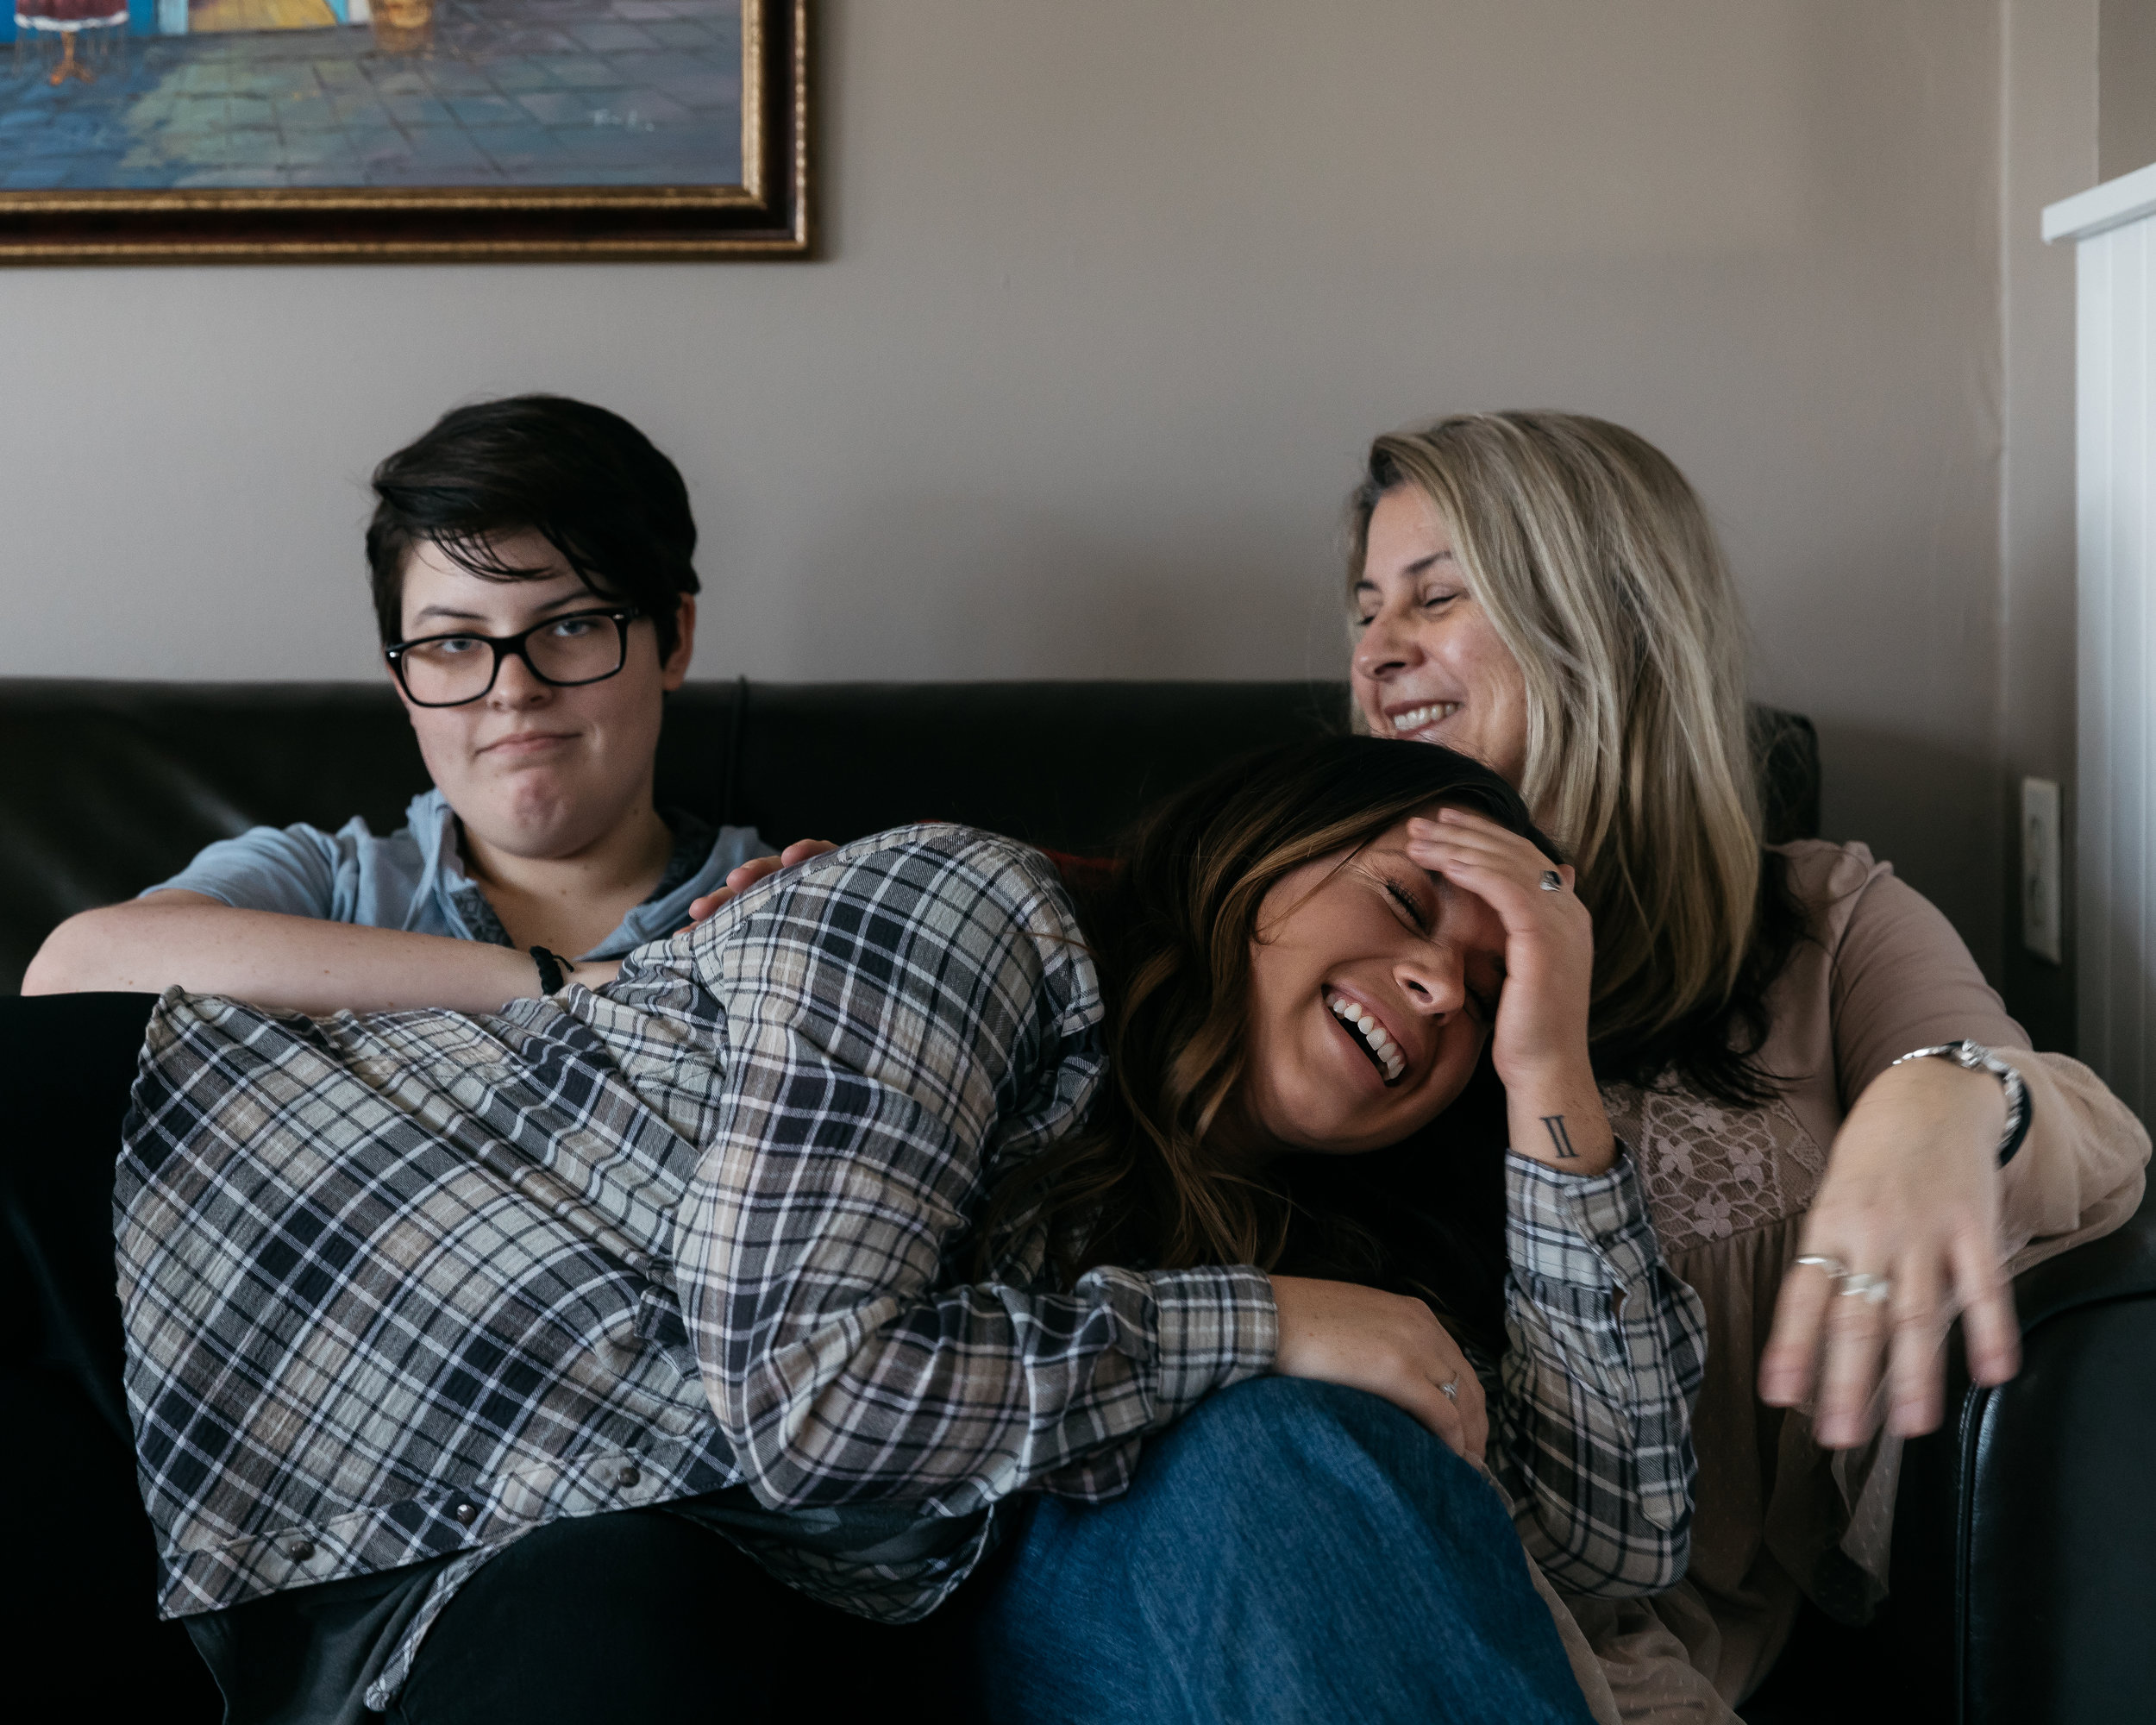 the women i grew up with: my mother and two sisters